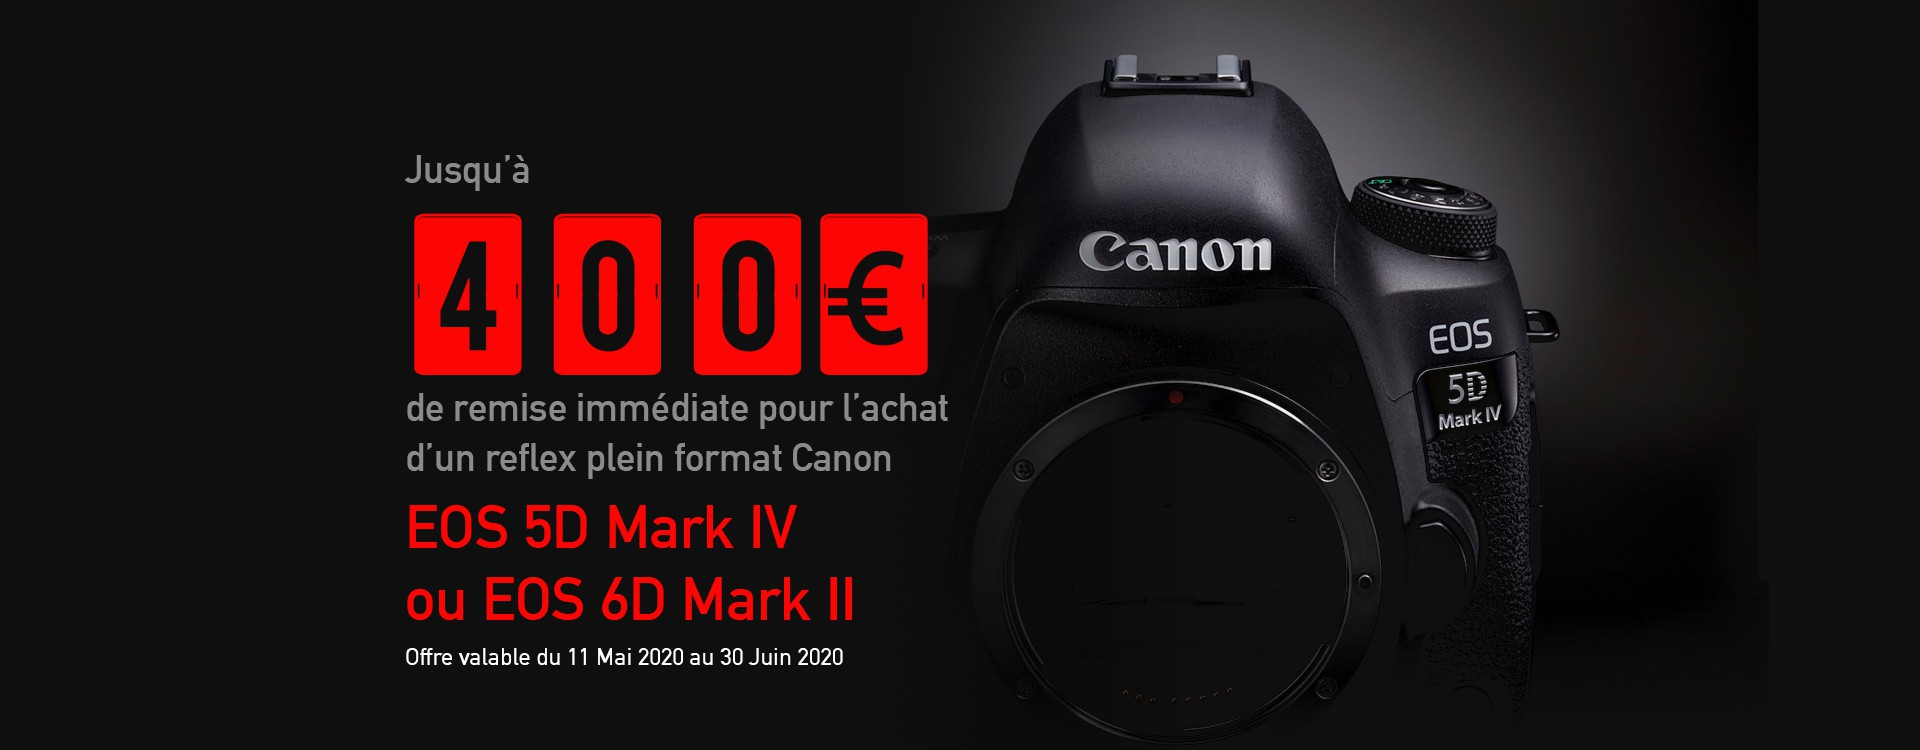 Offre Canon Photo Printemps 2020